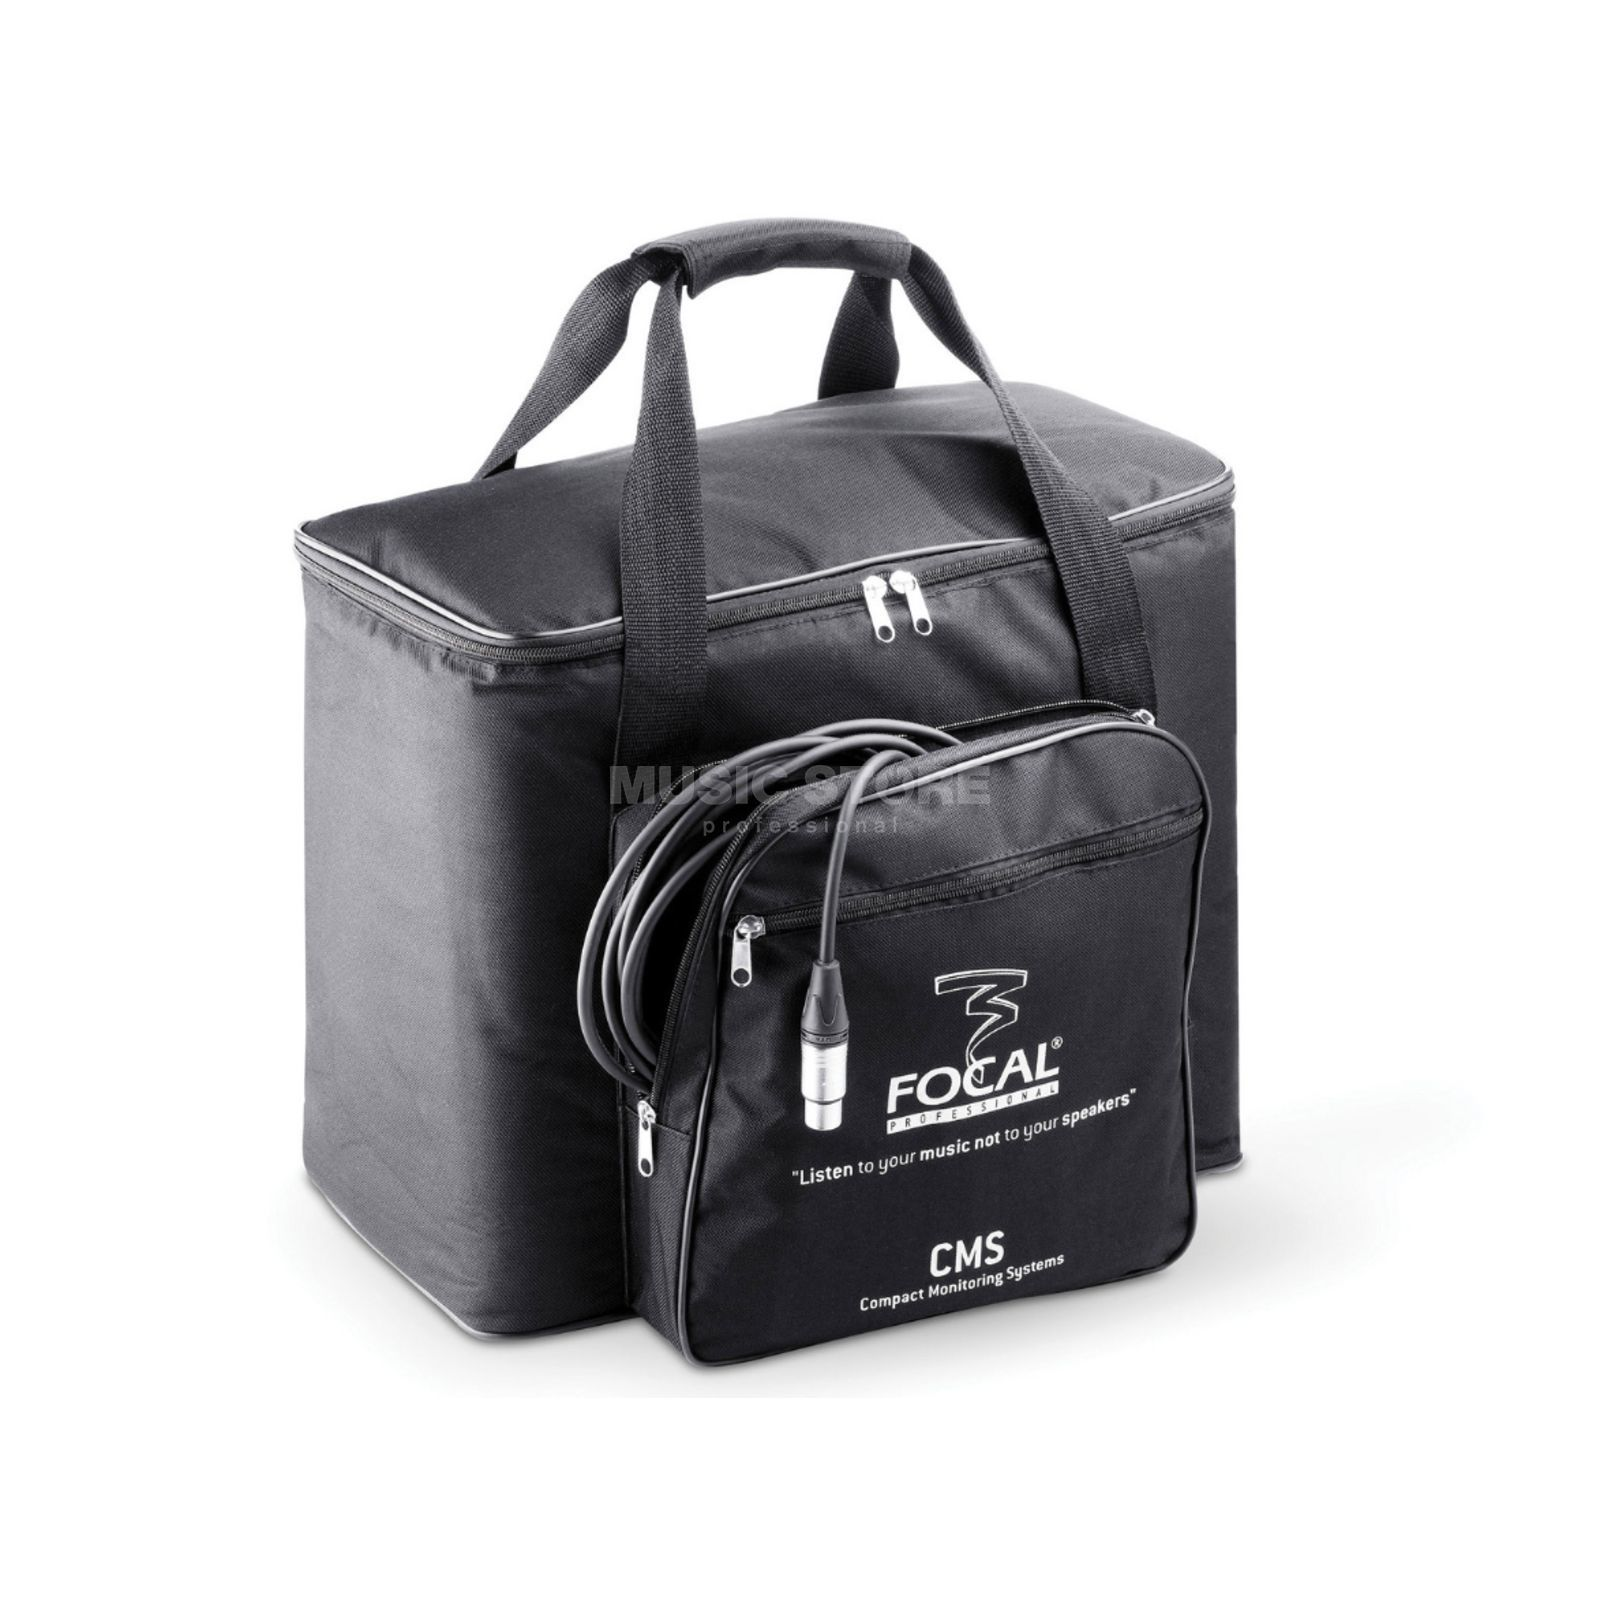 Focal CMS 50 Carrier Bag Bag for 2 CMS 50 Produktbillede